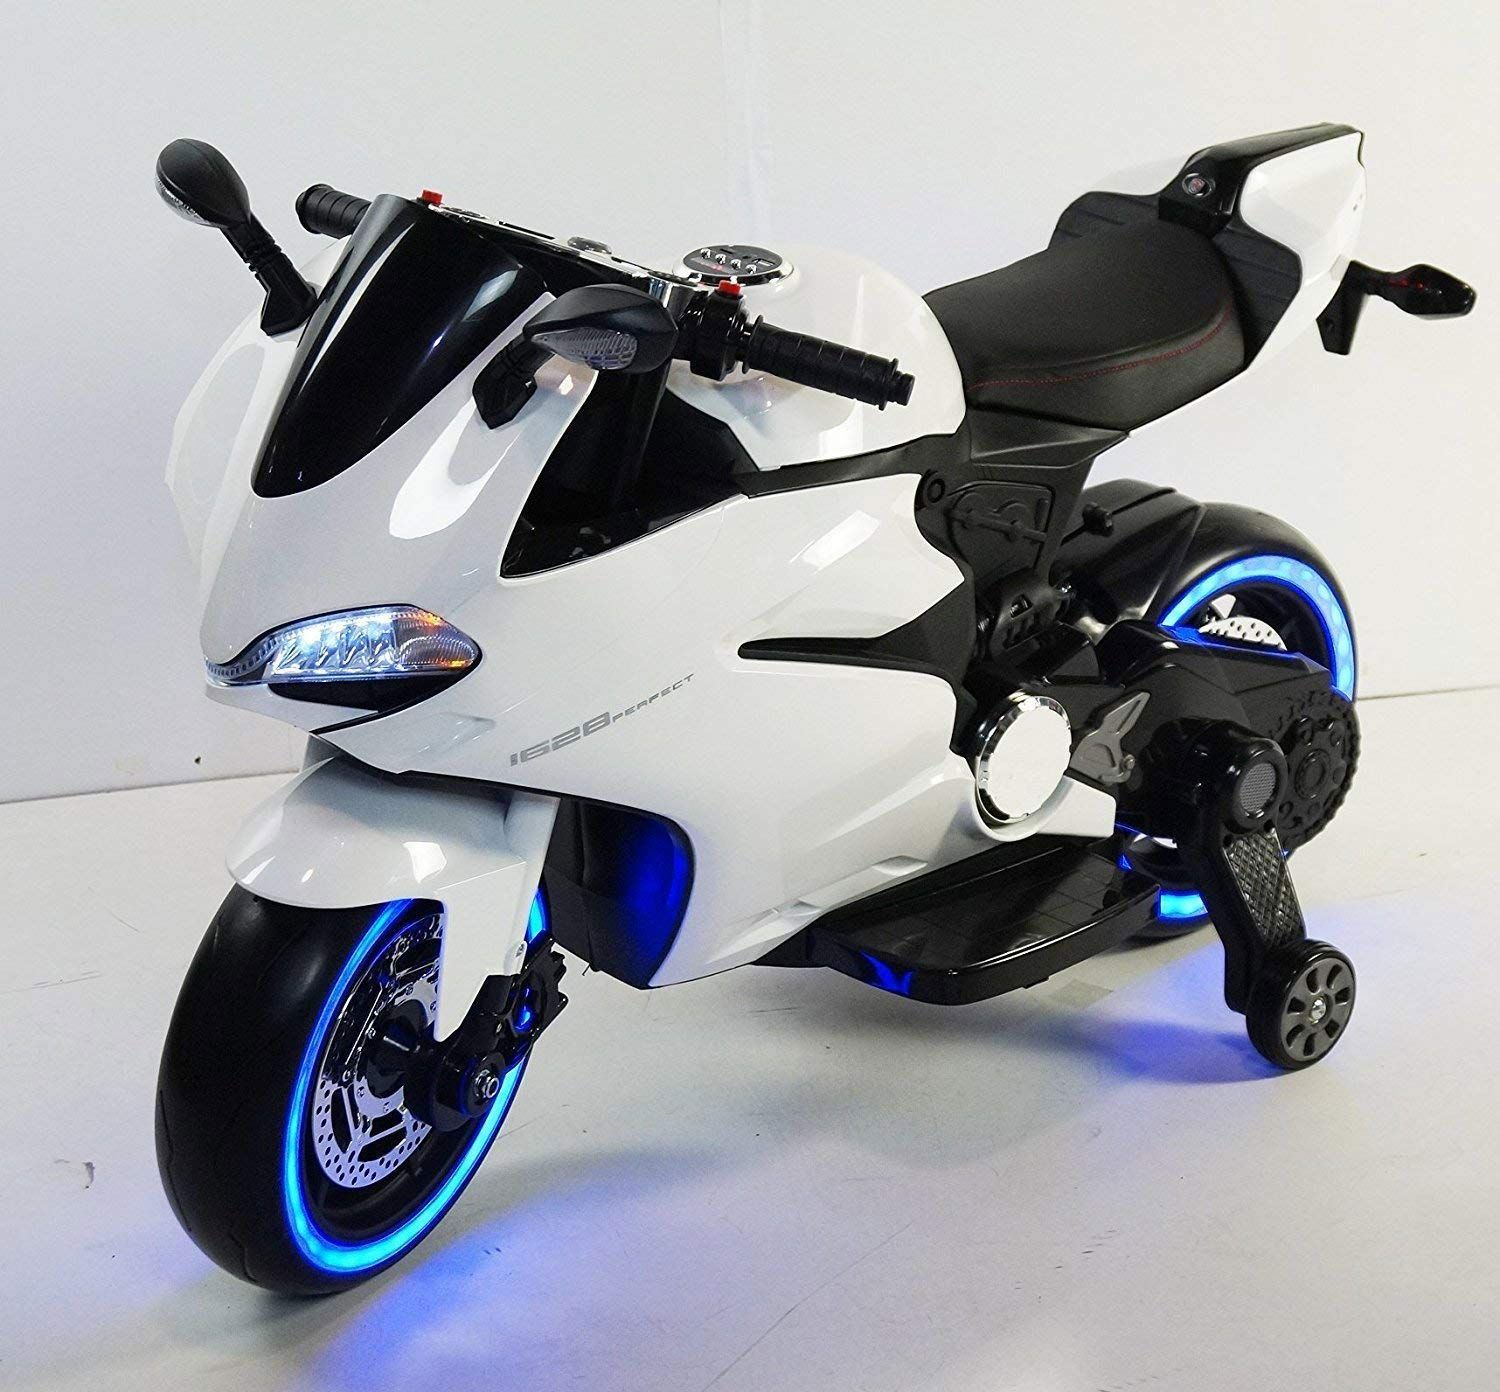 Buy GetBest 99 Ride on Bike for Kids with 12V Battery